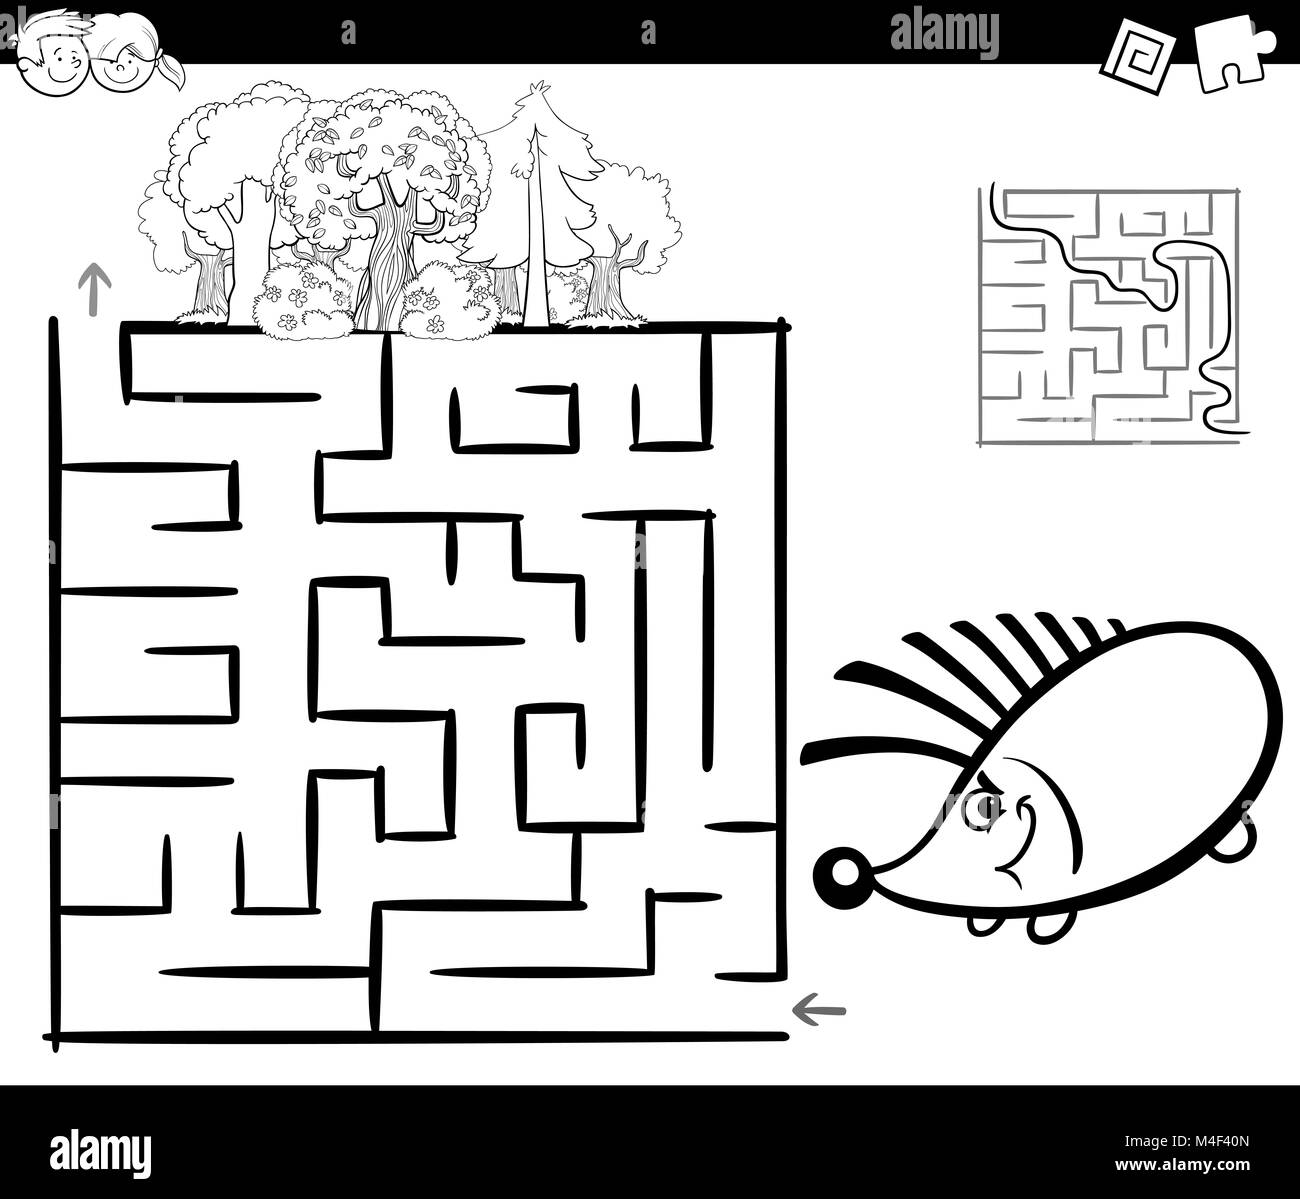 Maze With Hedgehog Coloring Page Stock Photo 174894741 Alamy